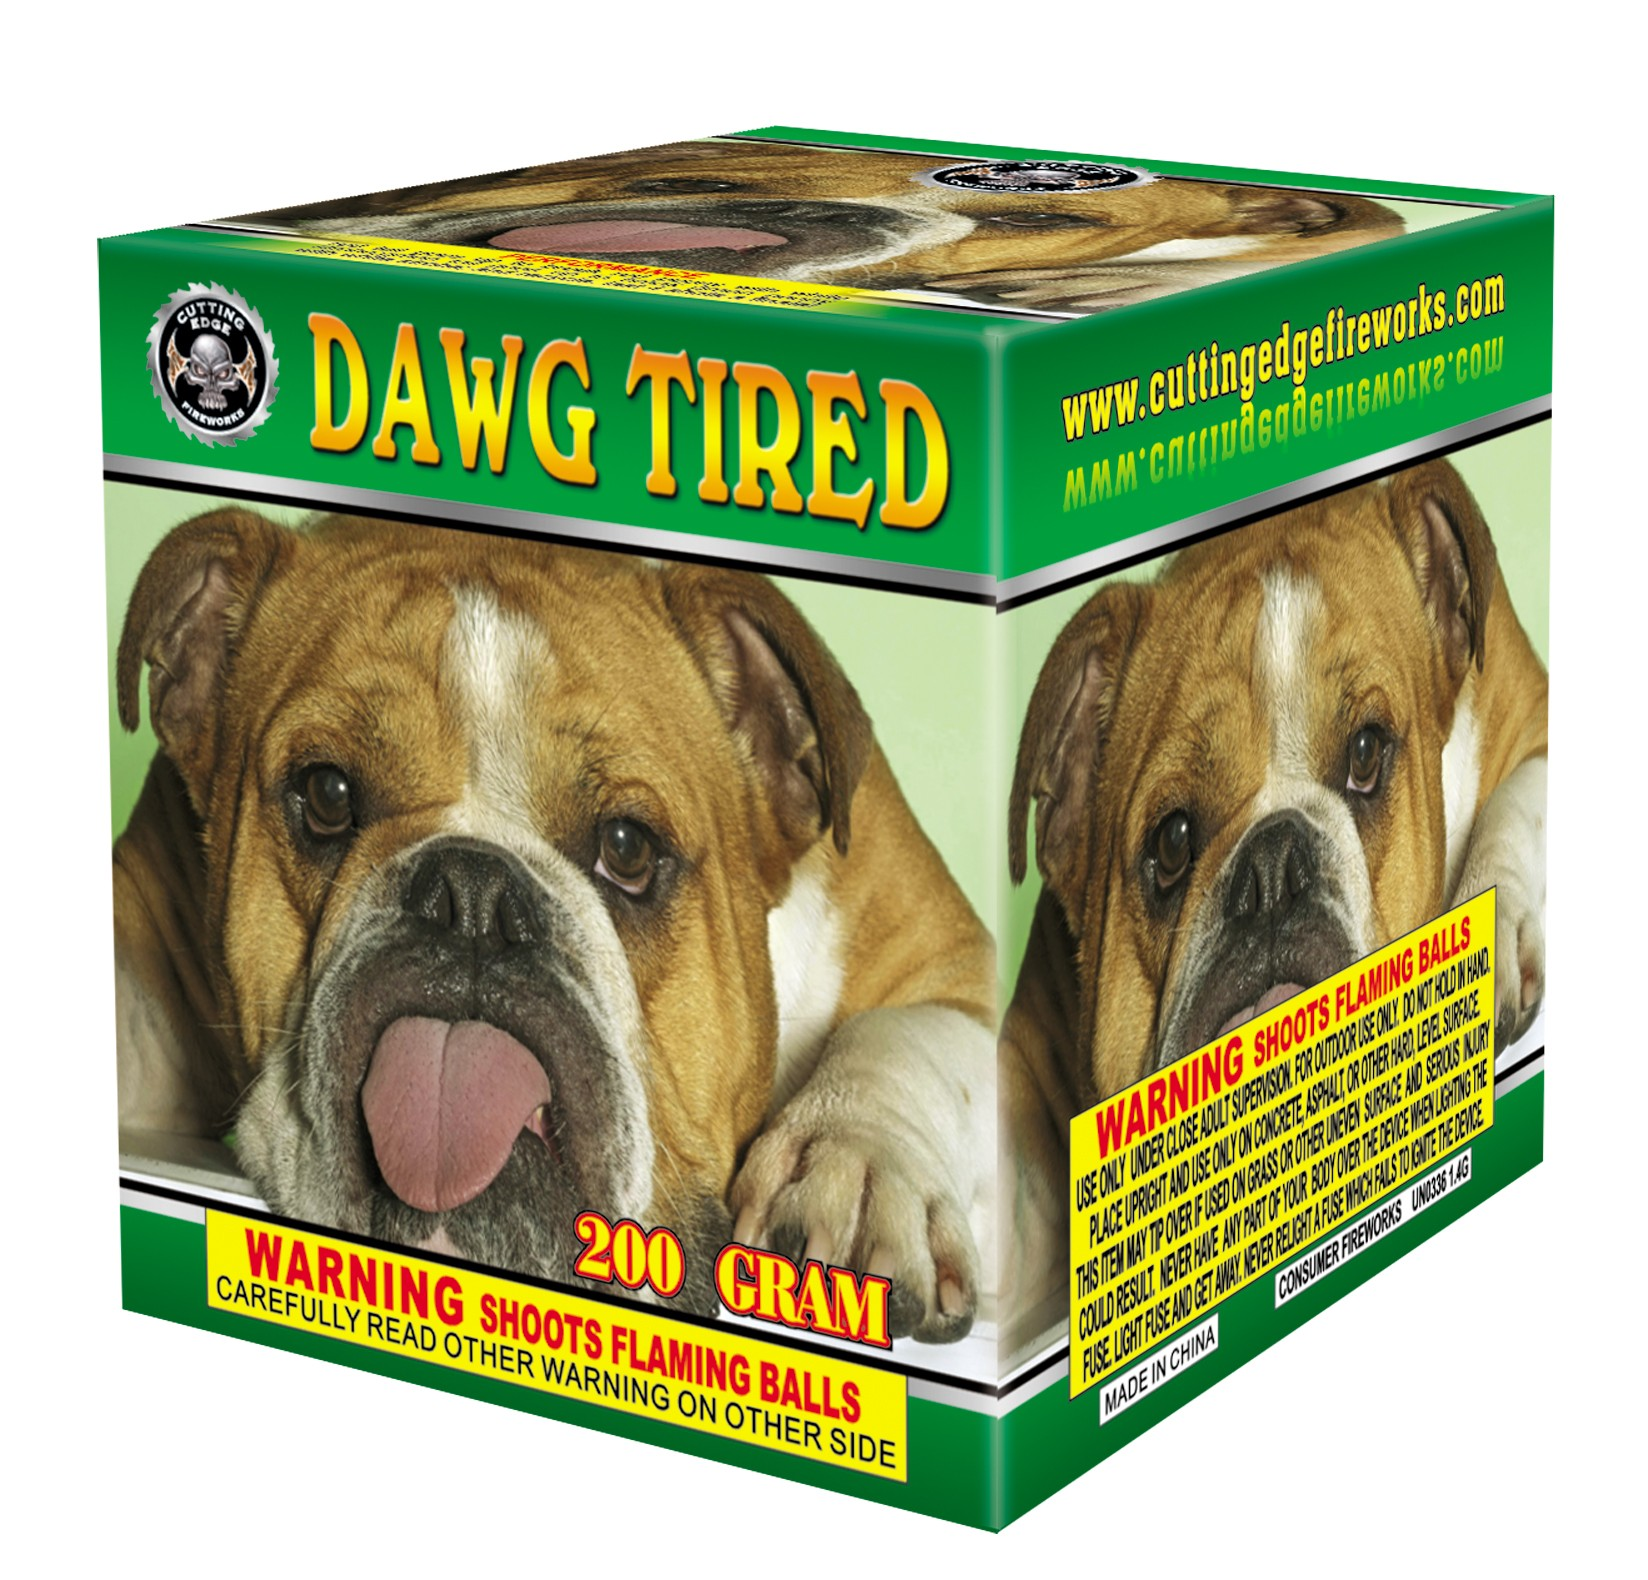 Dawg Tired 16 shot